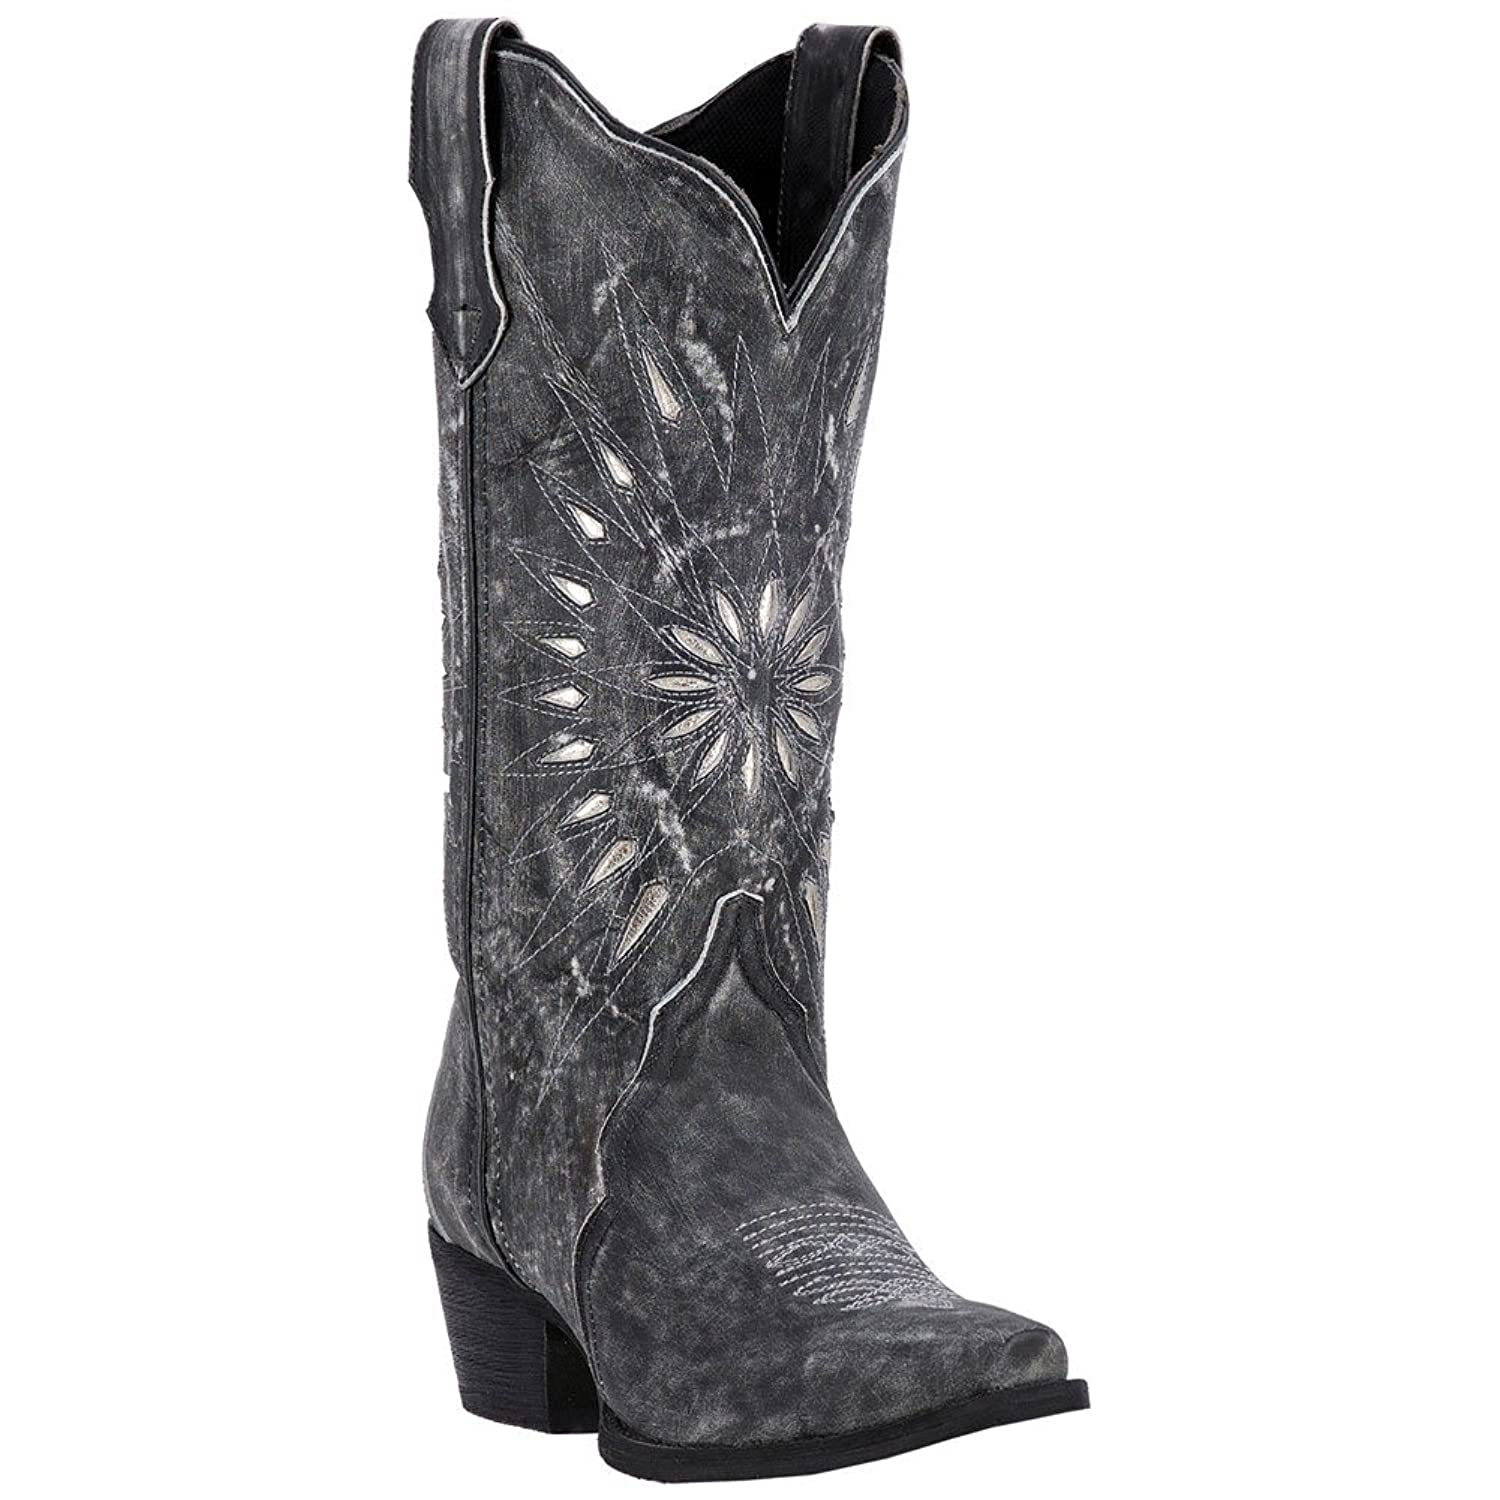 feet gainslifestyle of fortable cowboy comfortable have comforter womens put on boots com my artest thing i most best ever